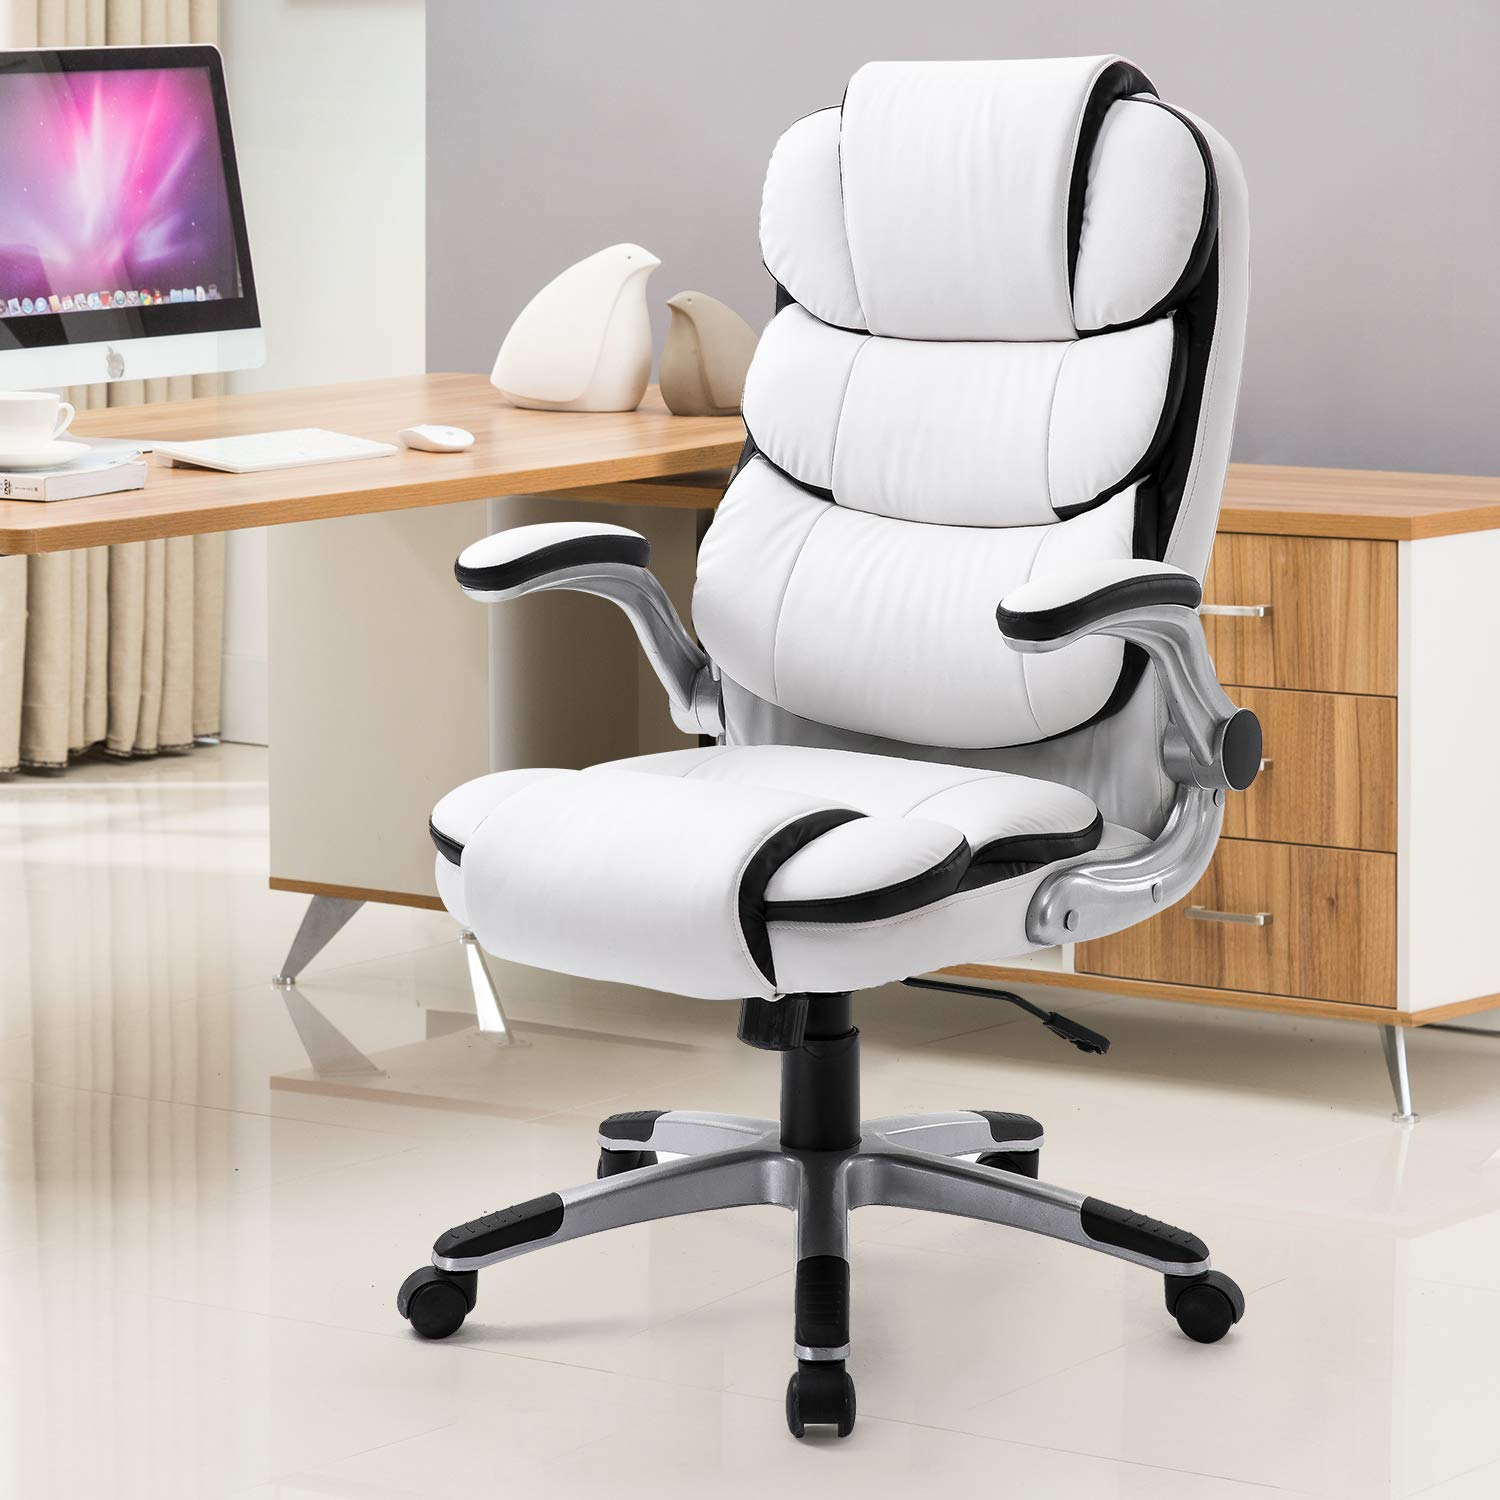 YAMASORO Leather Memory Foam Office Chair - Adjustable Lumbar Support Knob and Tilt Angle High Back Executive Computer Desk Chair White by YAMASORO